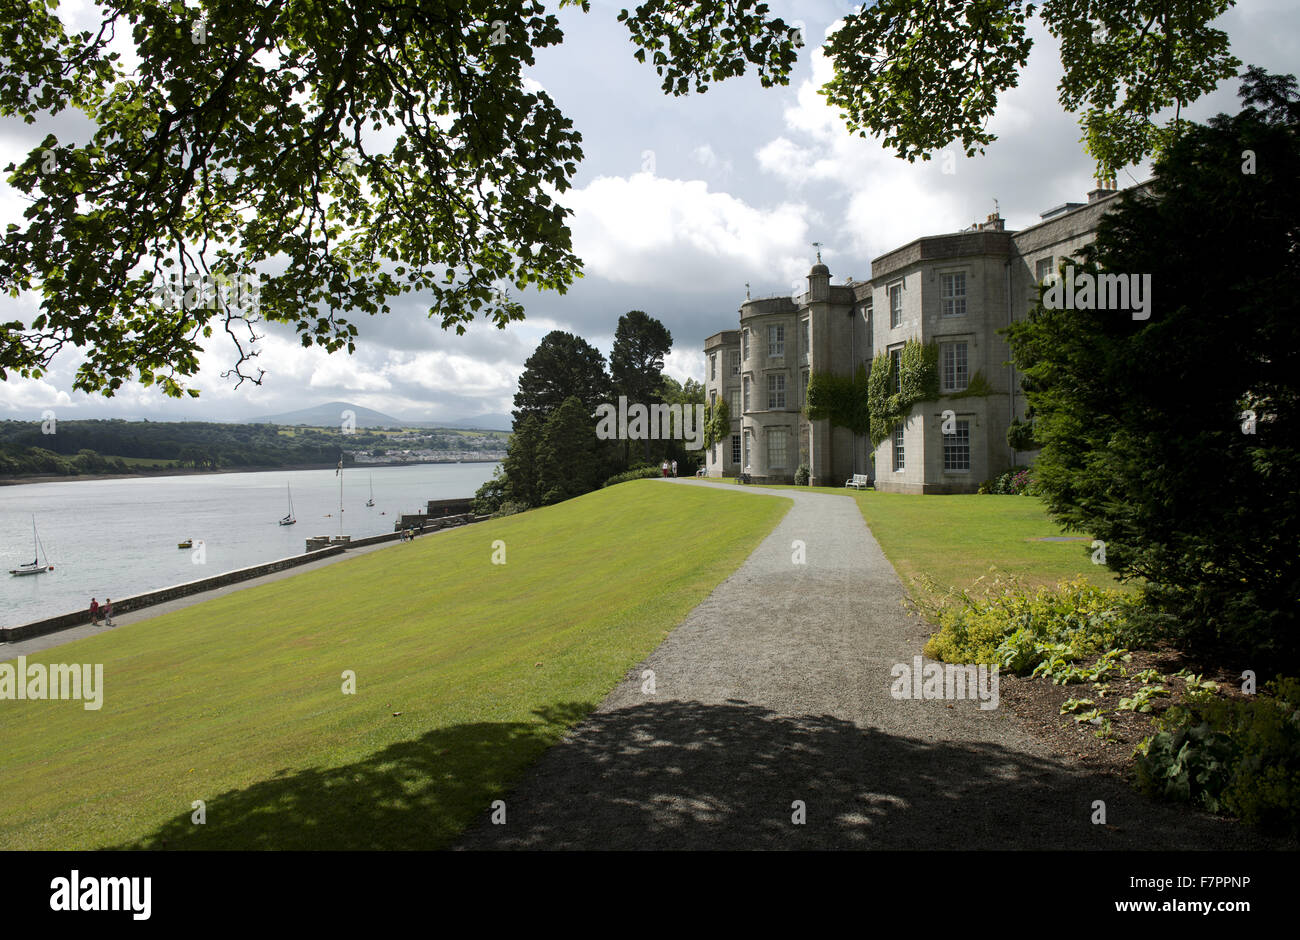 An exterior view at Plas Newydd Country House and Gardens, Anglesey, Wales. This fine 18th century mansion sits Stock Photo